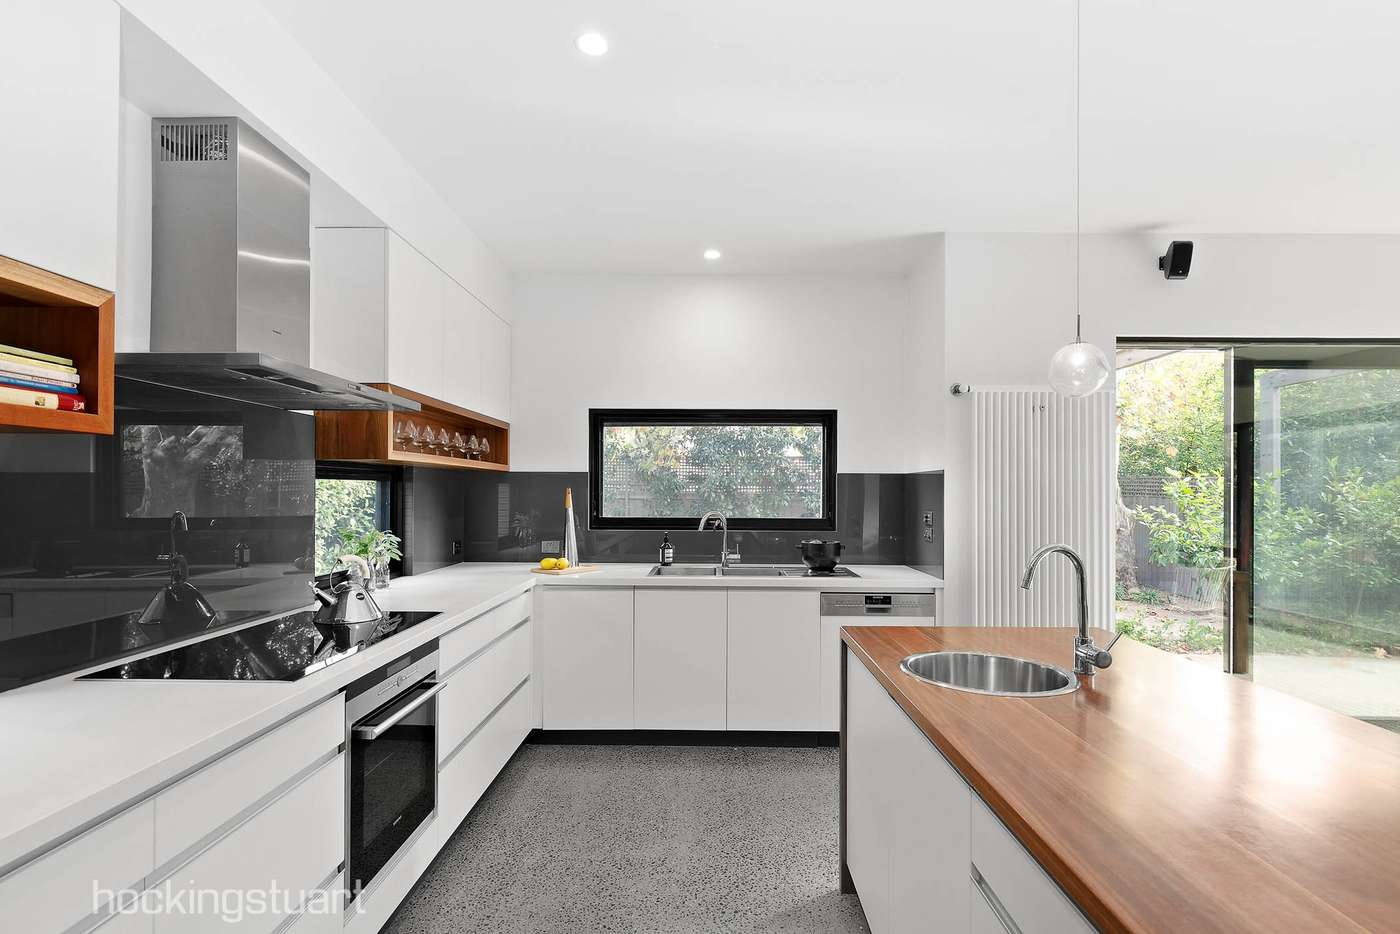 Fifth view of Homely house listing, 497 St Kilda Street, Elwood VIC 3184